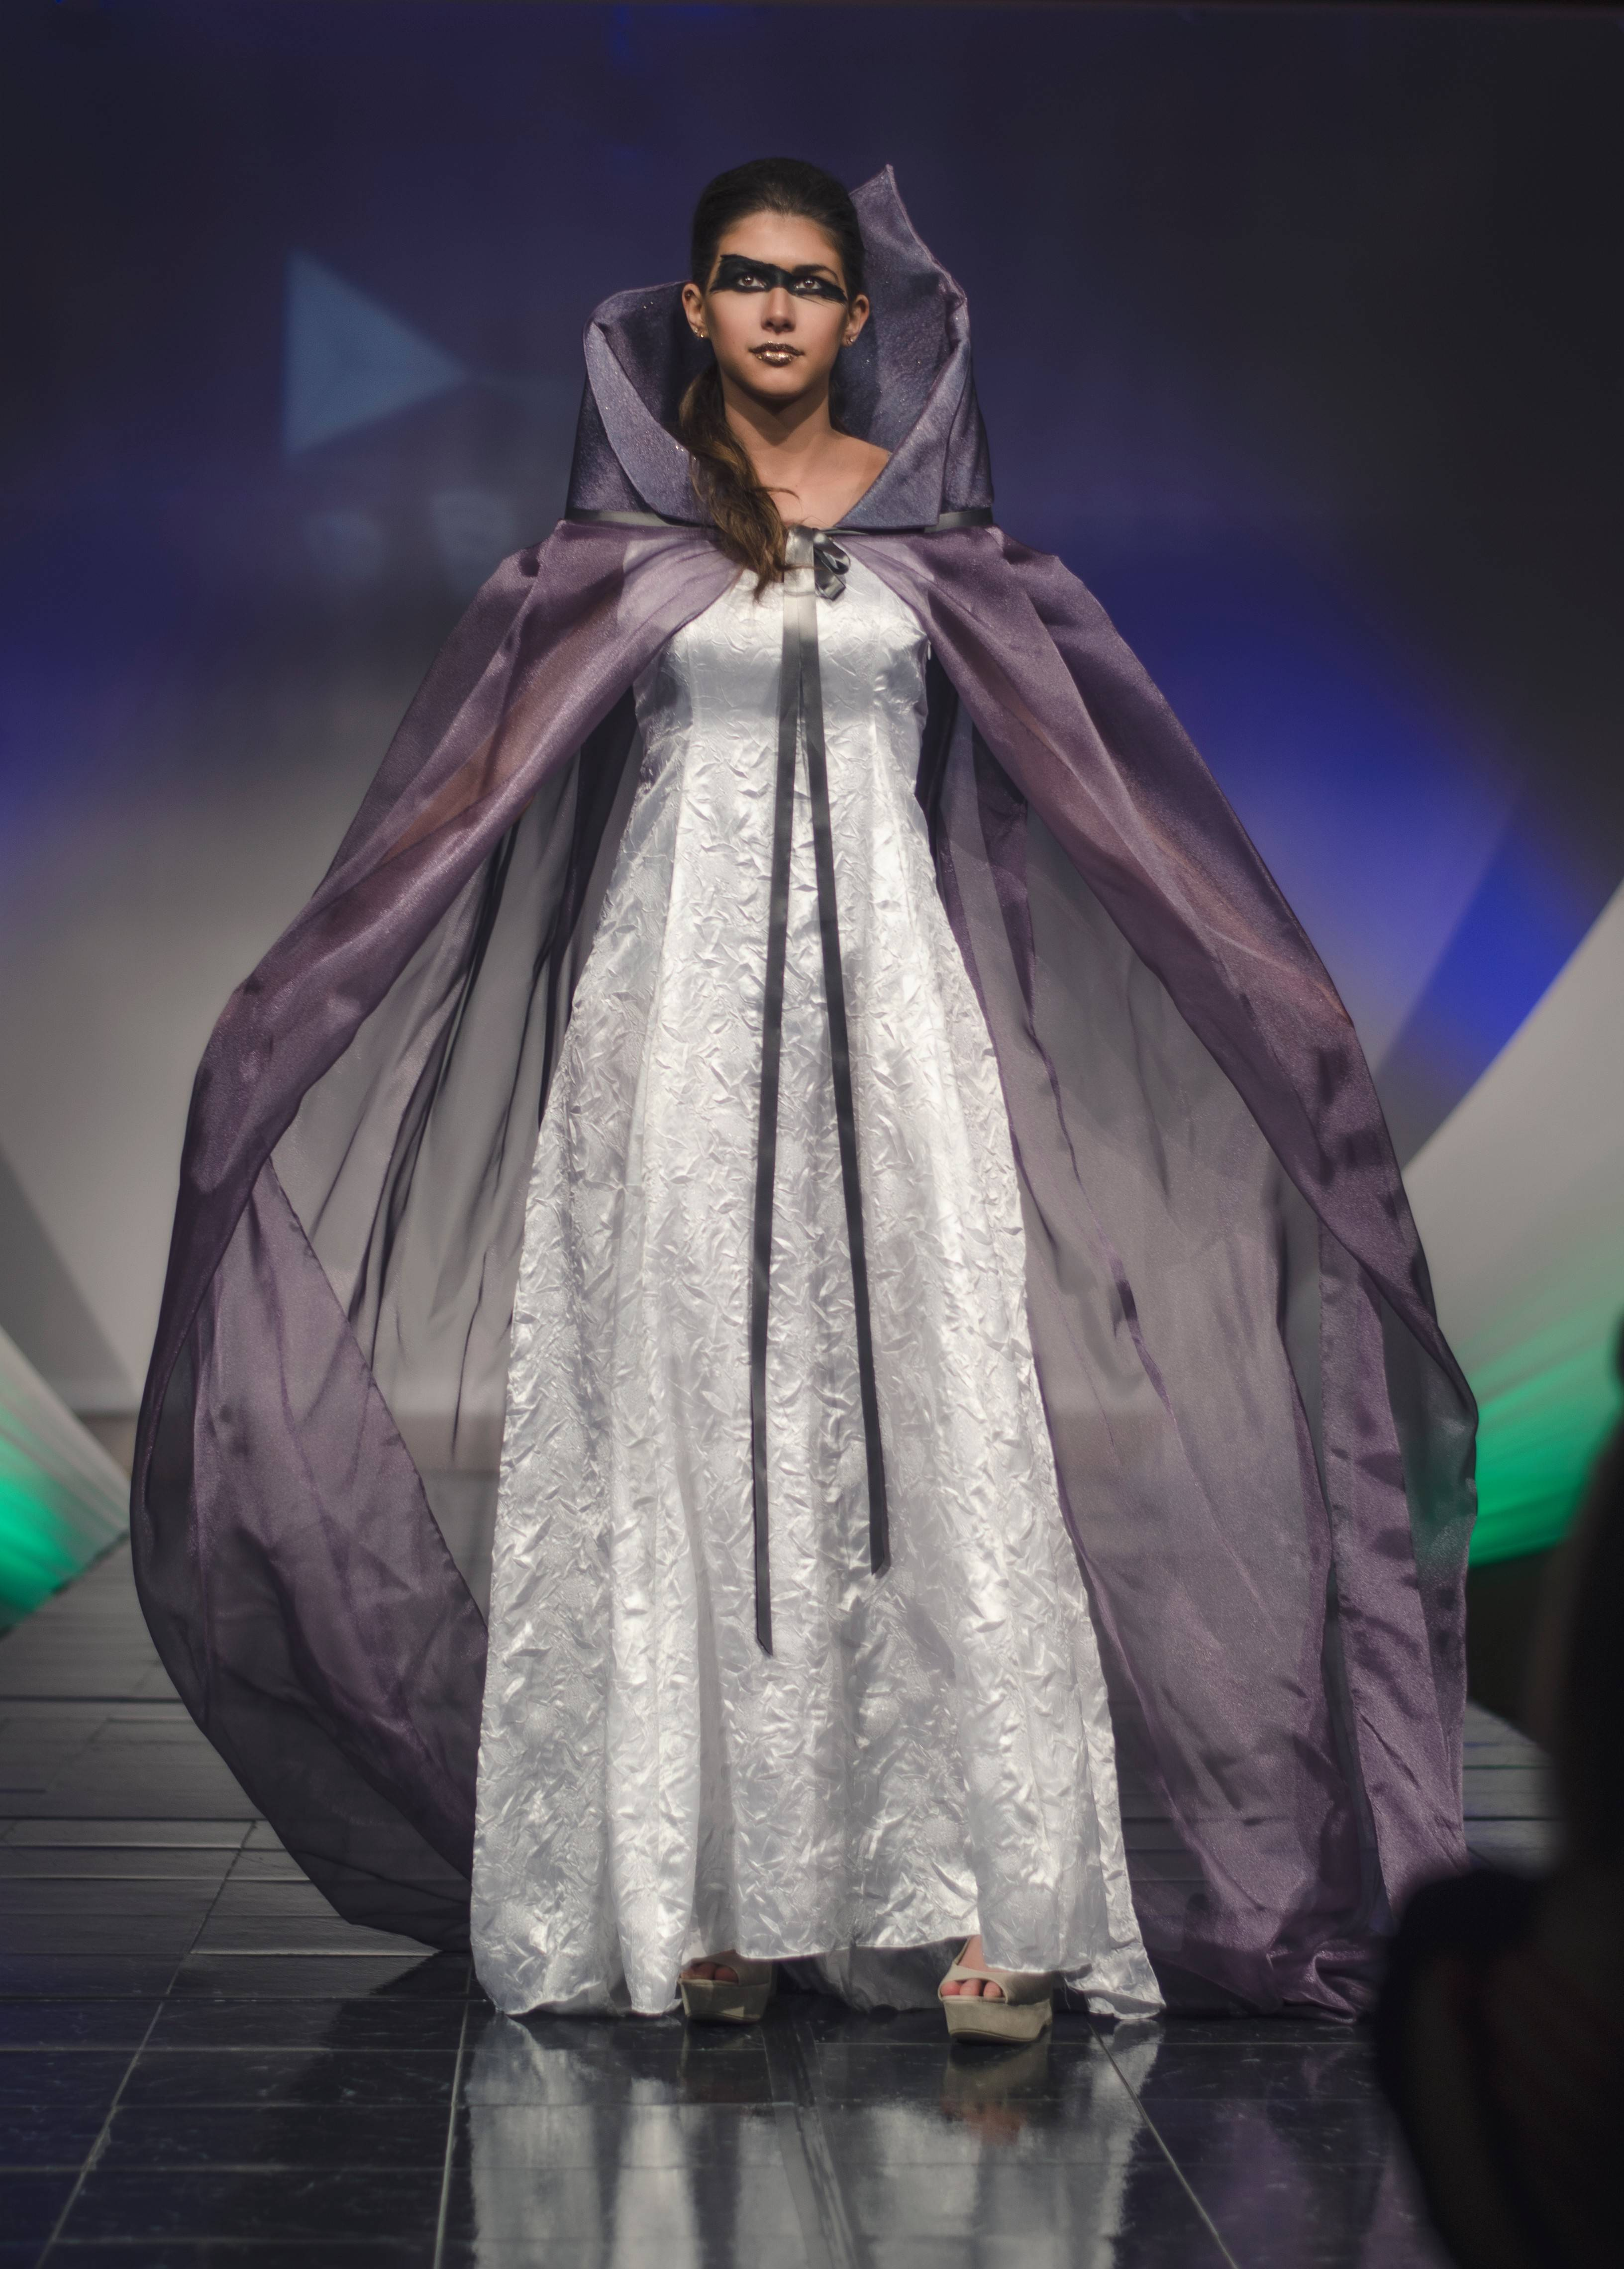 Mikayla Furlan is wearing a gown and cape by designer Ashley Alverth. The student-run fashion show raised more than $18,000 for Salute Inc. in Palatine.